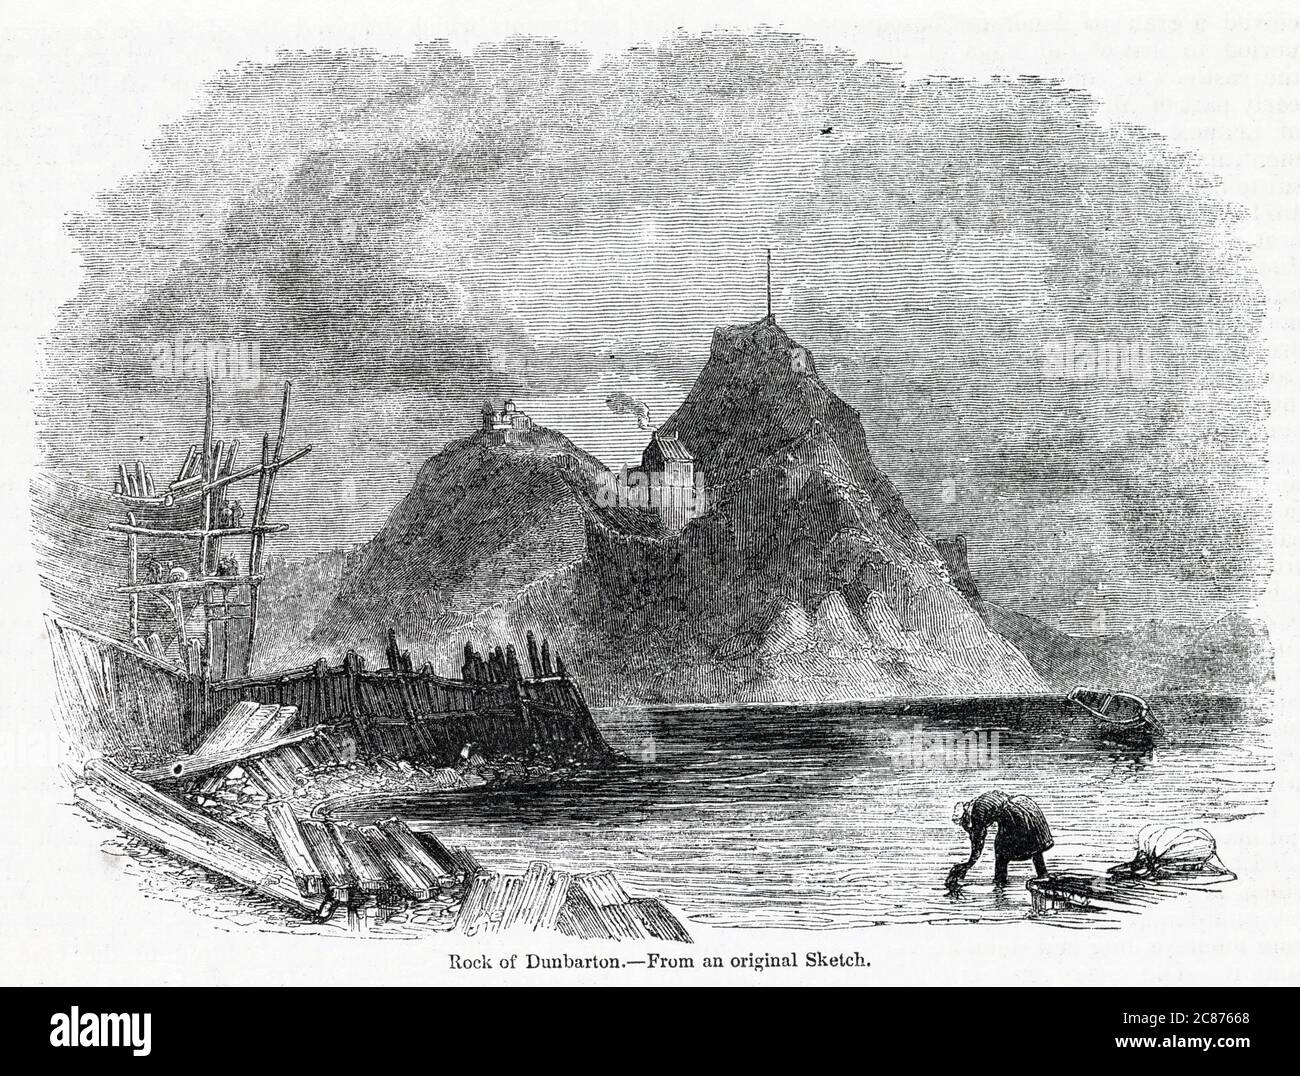 View of Dumbarton Castle and Dumbarton Rock, on the River Clyde, Scotland.      Date: 1841 Stock Photo